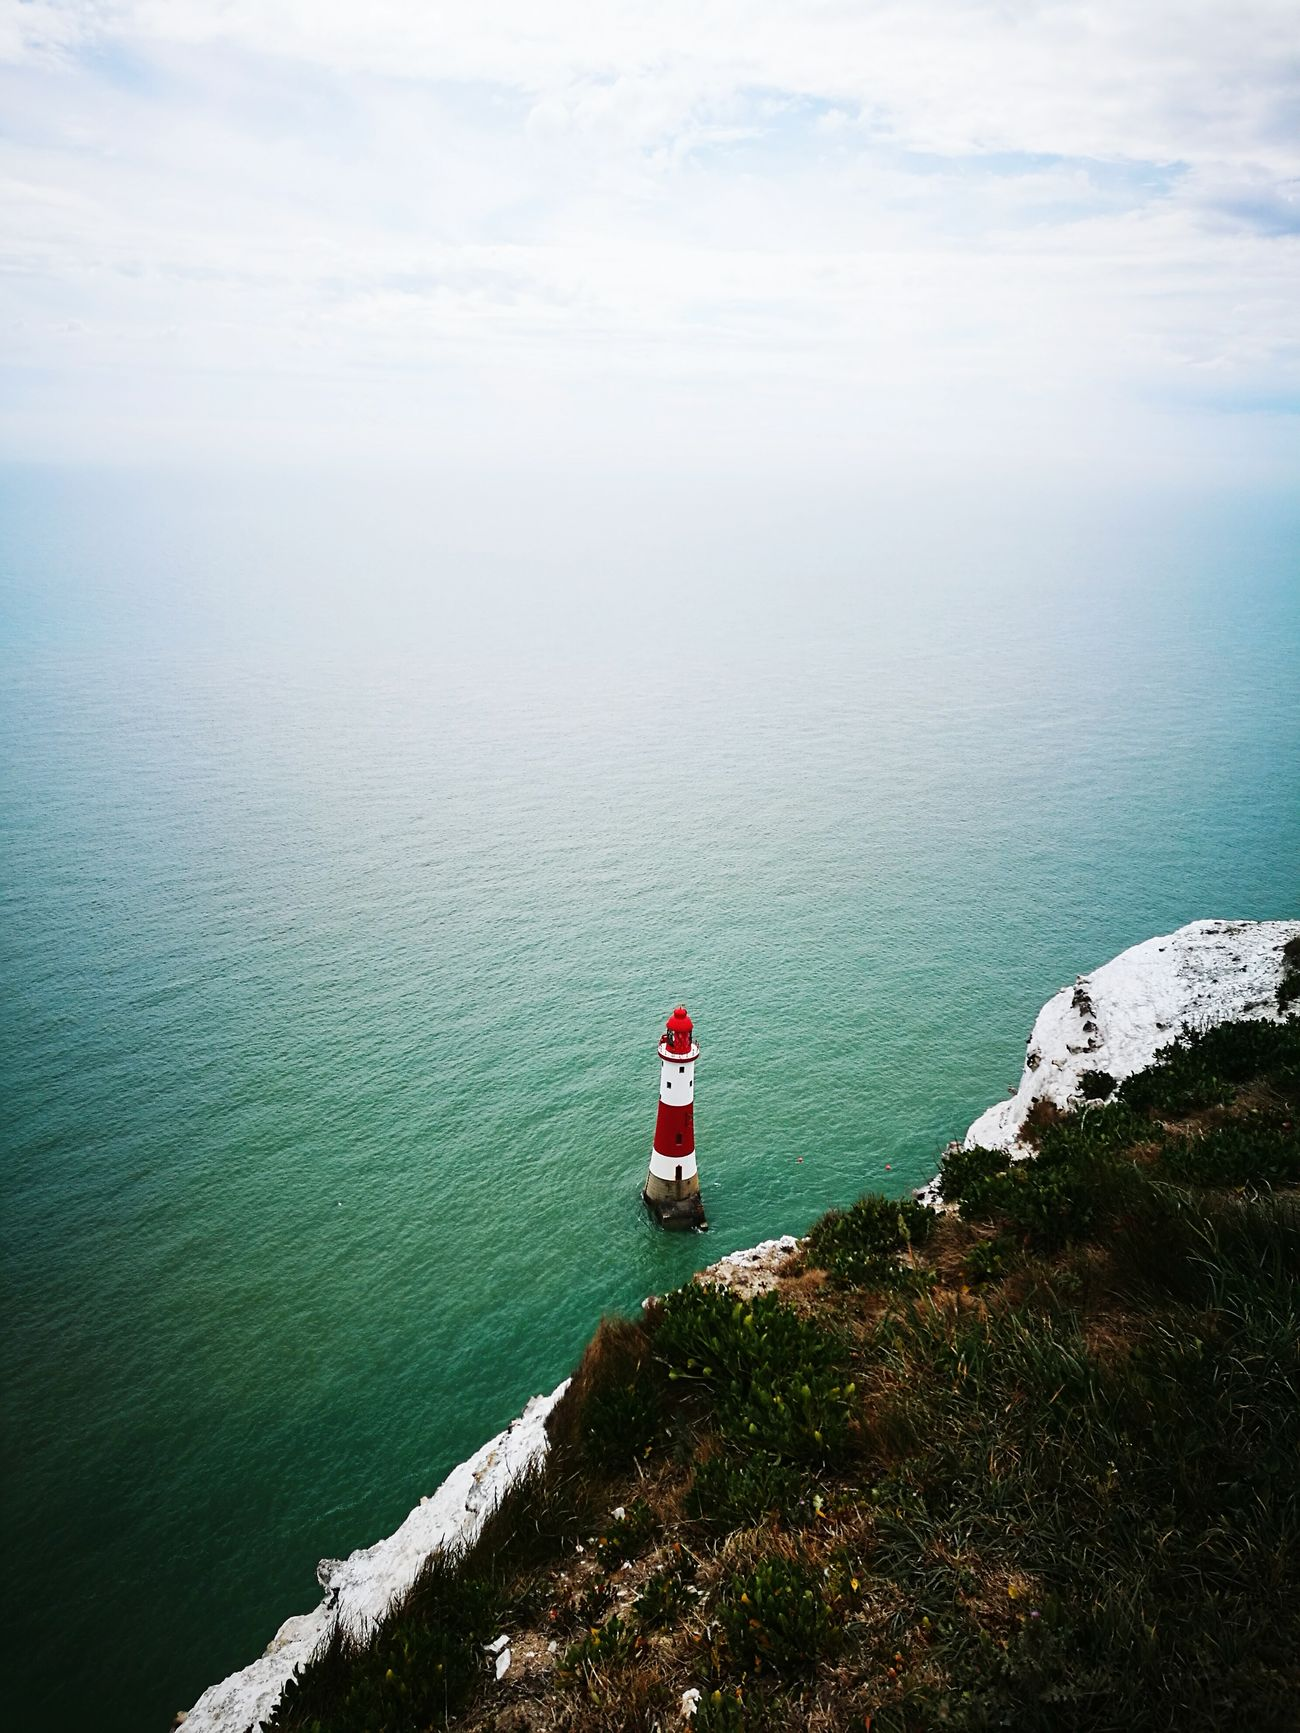 Water Sea Outdoors Day Nature Red Beauty In Nature Sky Inmyheart Inghilterra Taking Photos Exploring Loveit Passion Photo Beauty In Nature Landscape Rural Scene No People Cloud - Sky Travel Photography Hello World Viaggio Aroundtheworld Myplace The Great Outdoors - 2017 EyeEm Awards